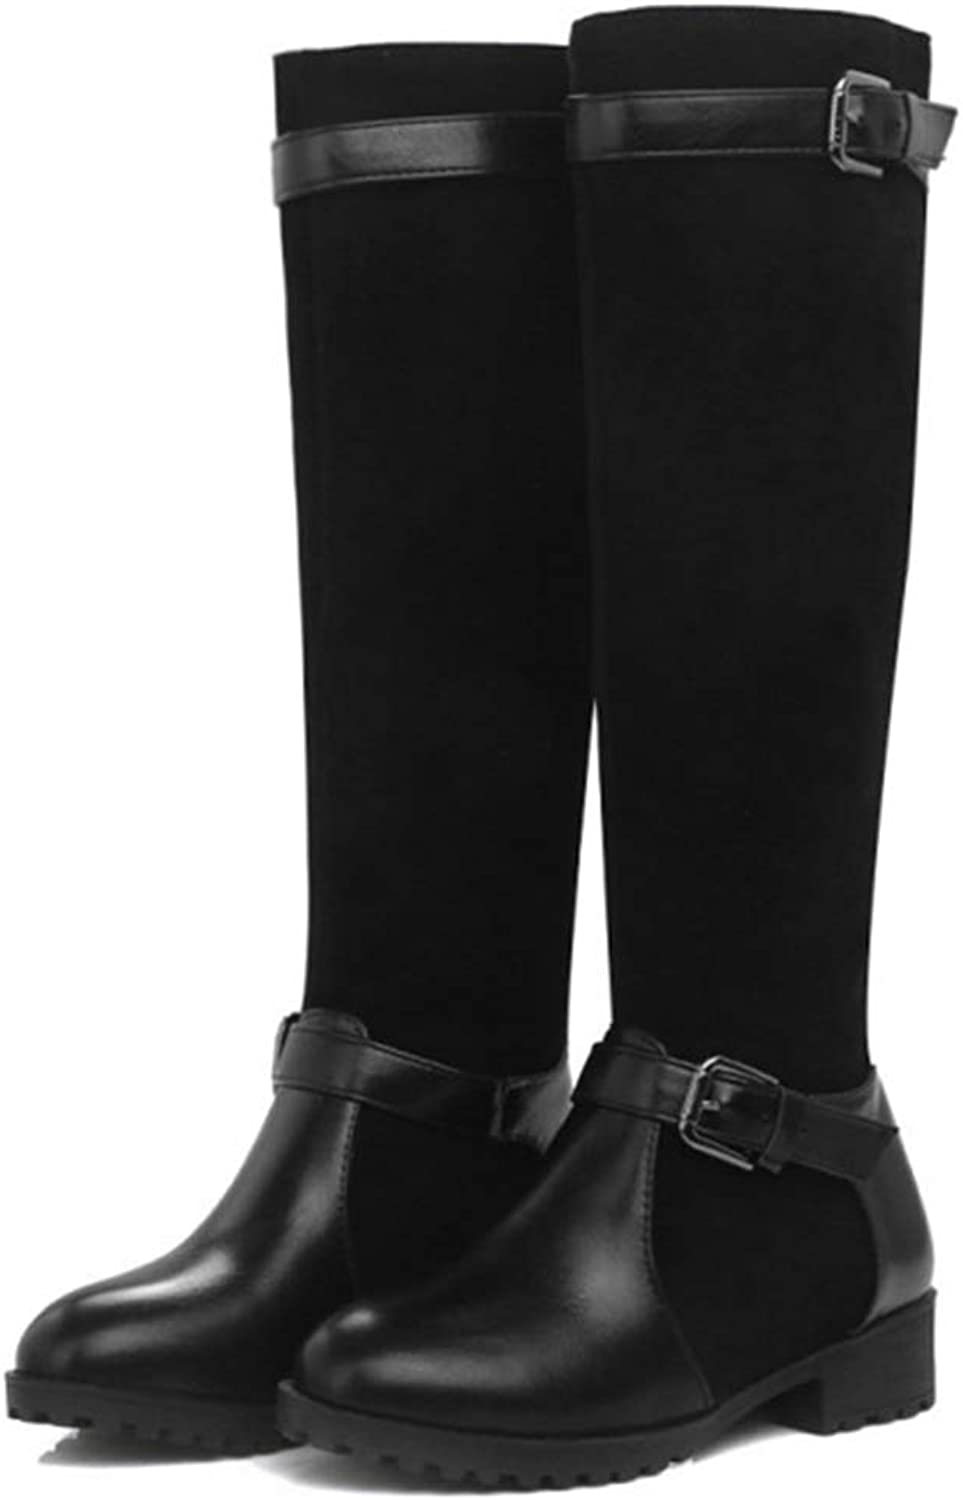 GIY Women's Mid Calf Military Zipper Combat Boots Faux Suede Watrproof Round Toe Buckle Strap Slip On Winter Low Heel Riding Boots